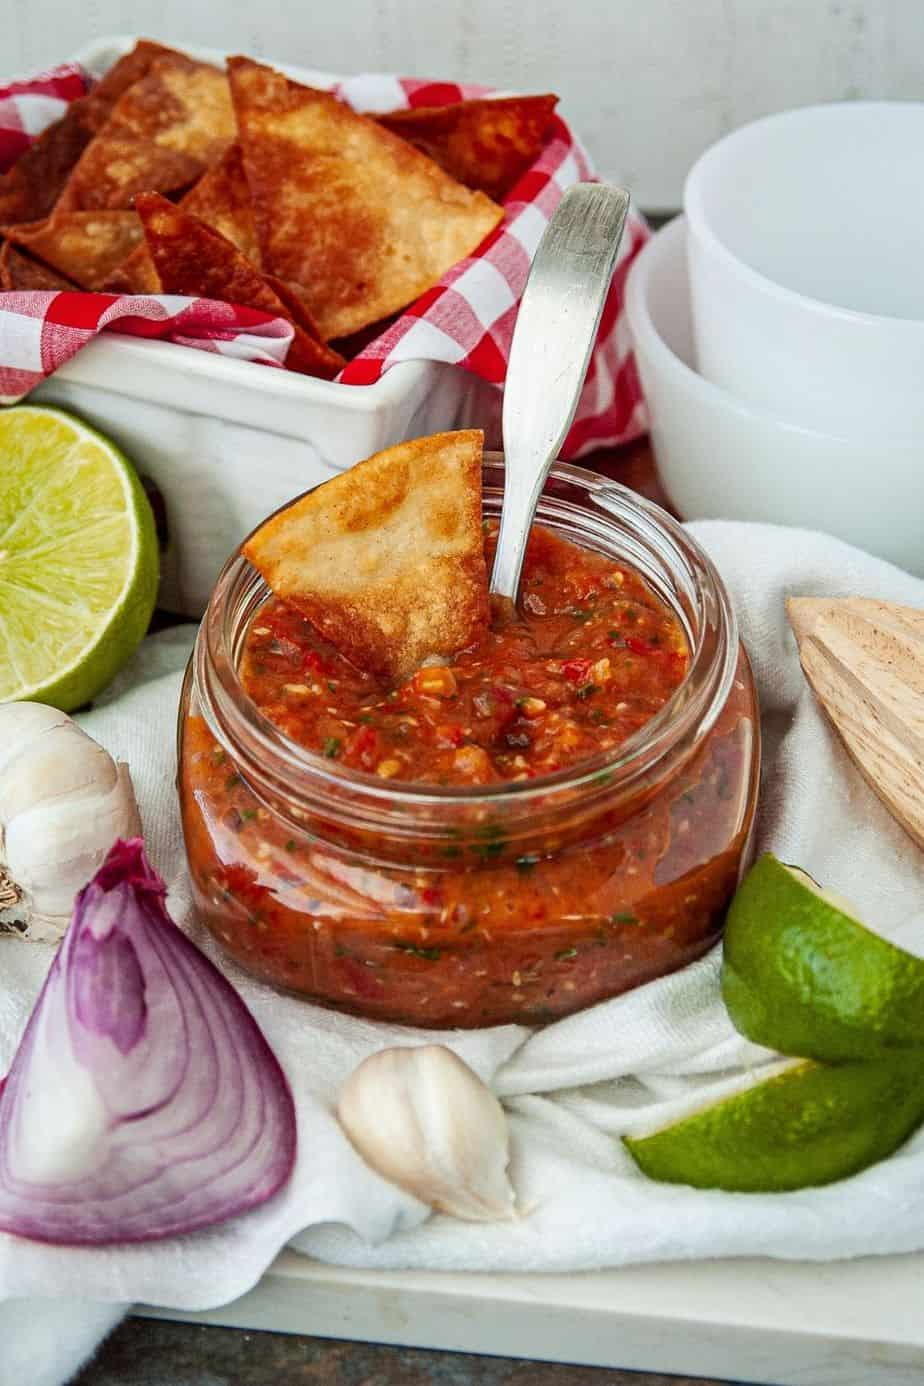 Spice things up with the easy roasted tomato and tomatillo salsa recipe. This easy salsa recipe is full of roasted tomatoes and tomatillos. If you need a side for Mexican night or an easy dip recipe, try this roasted tomato salsa recipe.